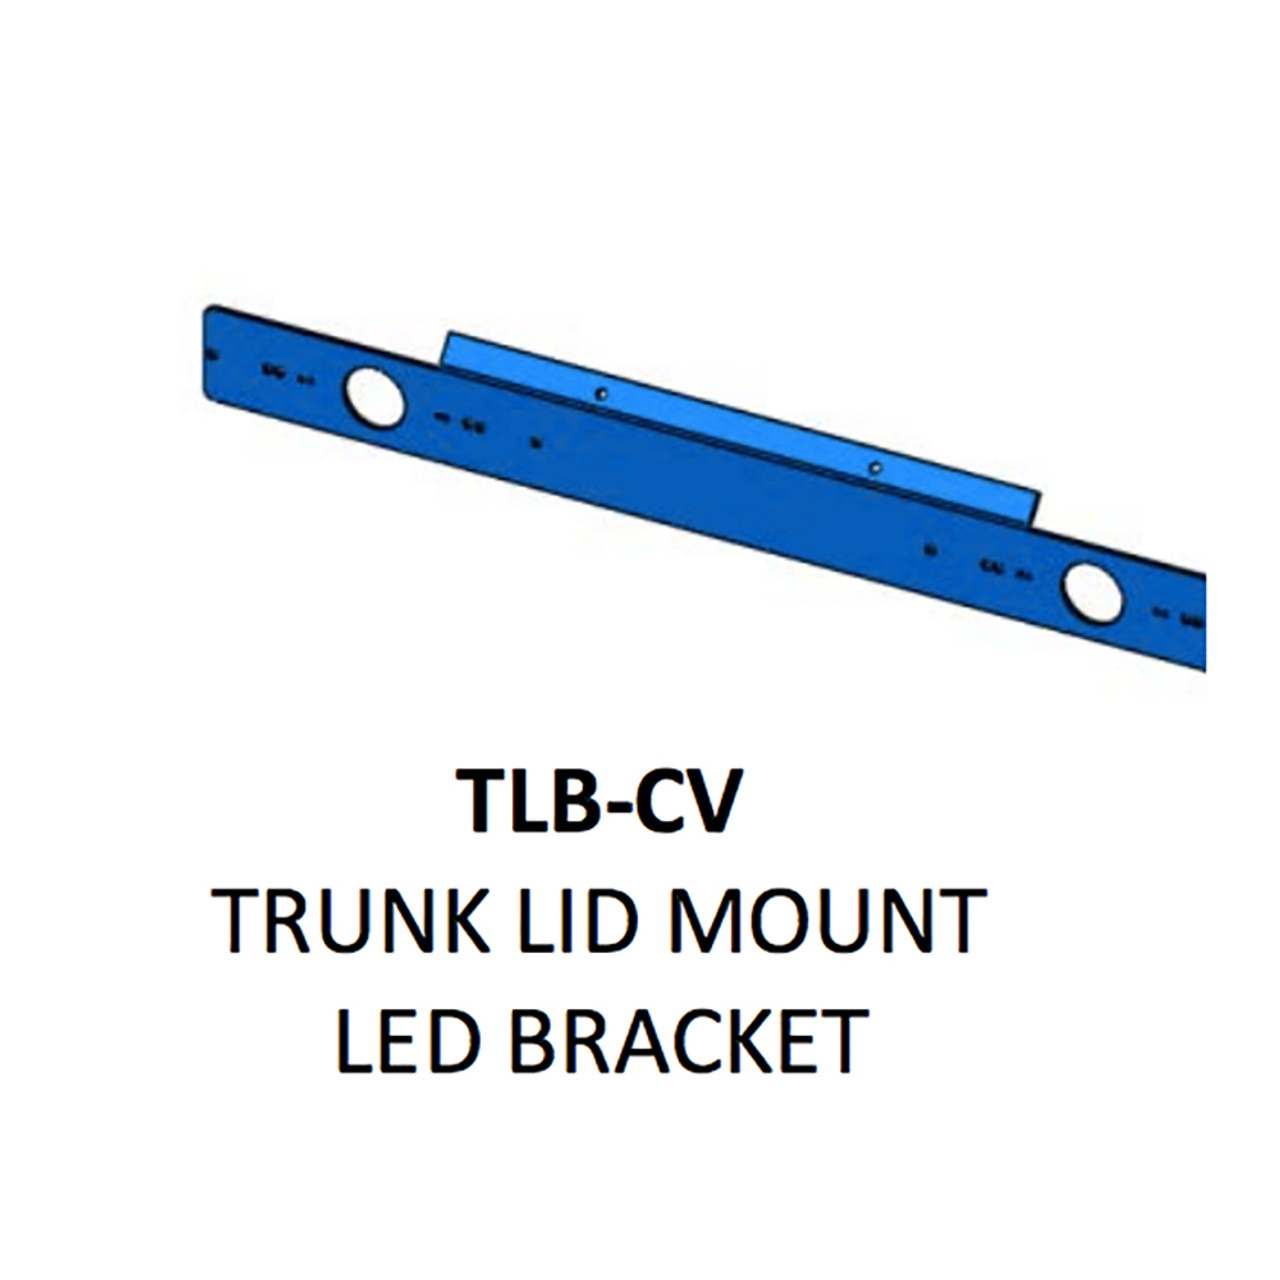 Code-3 Trunk Lid SIngle Bracket, For 2004-2011 Ford Crown Victoria Fits T-REX, XTP3, TRS3, LED X, and TRS6 Light heads TLB-CV